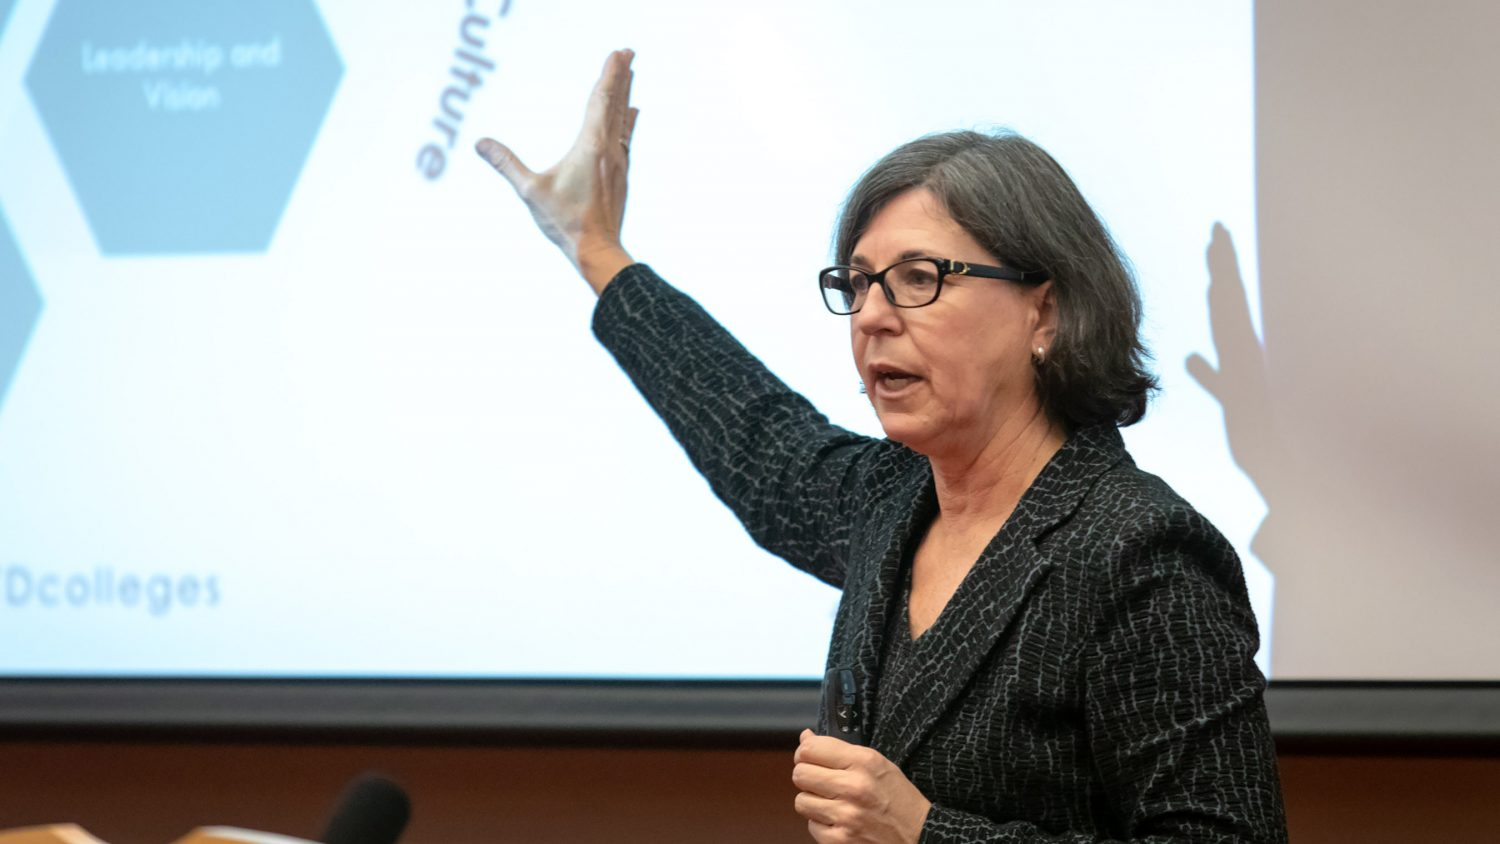 A photo of Karen A. Stout at the 2018 Dallas Herring Lecture